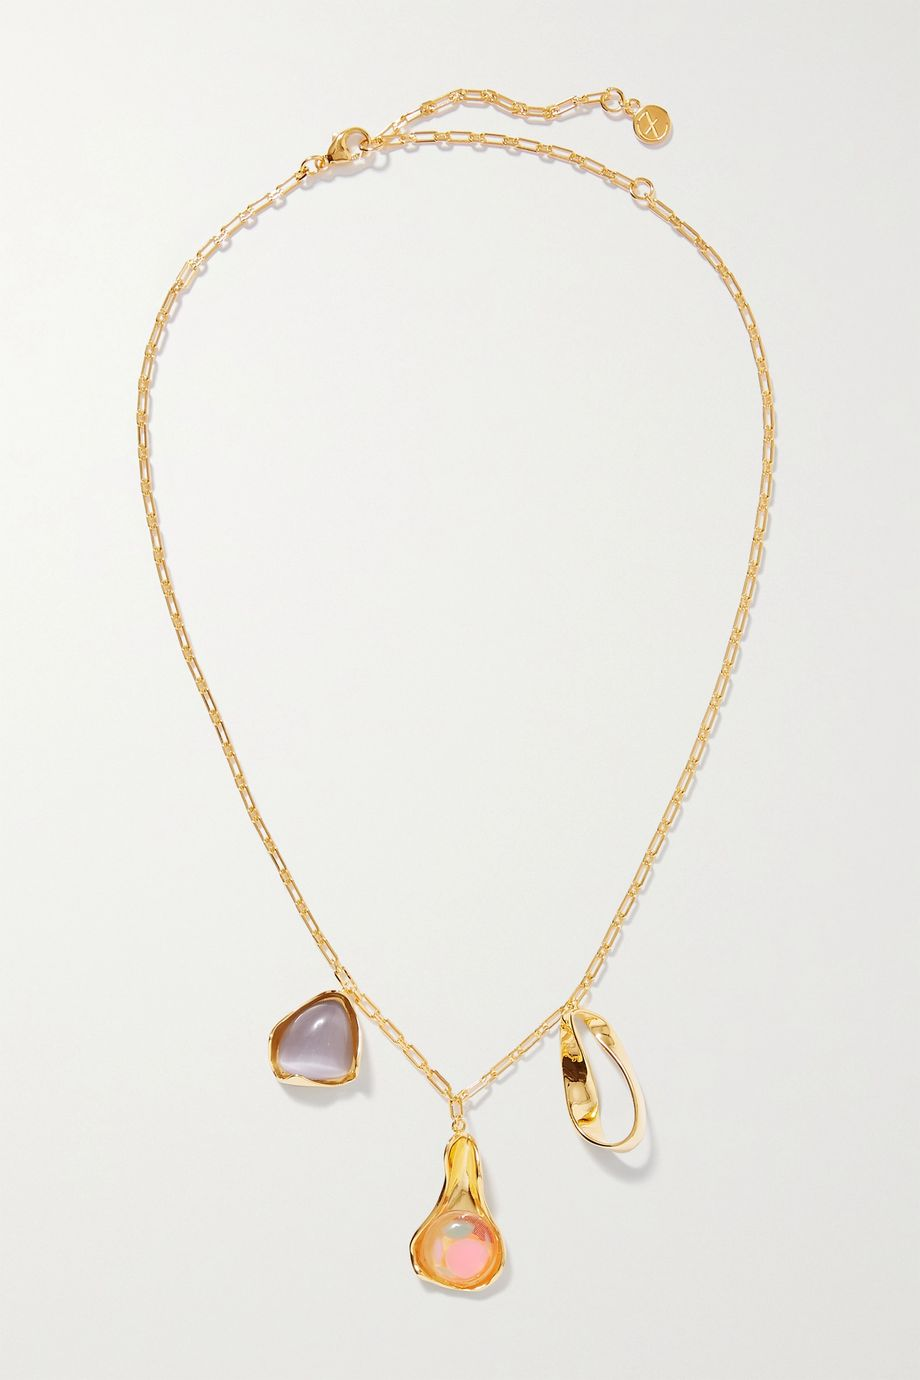 Ejing Zhang Dyce gold-plated resin and cat's eye necklace